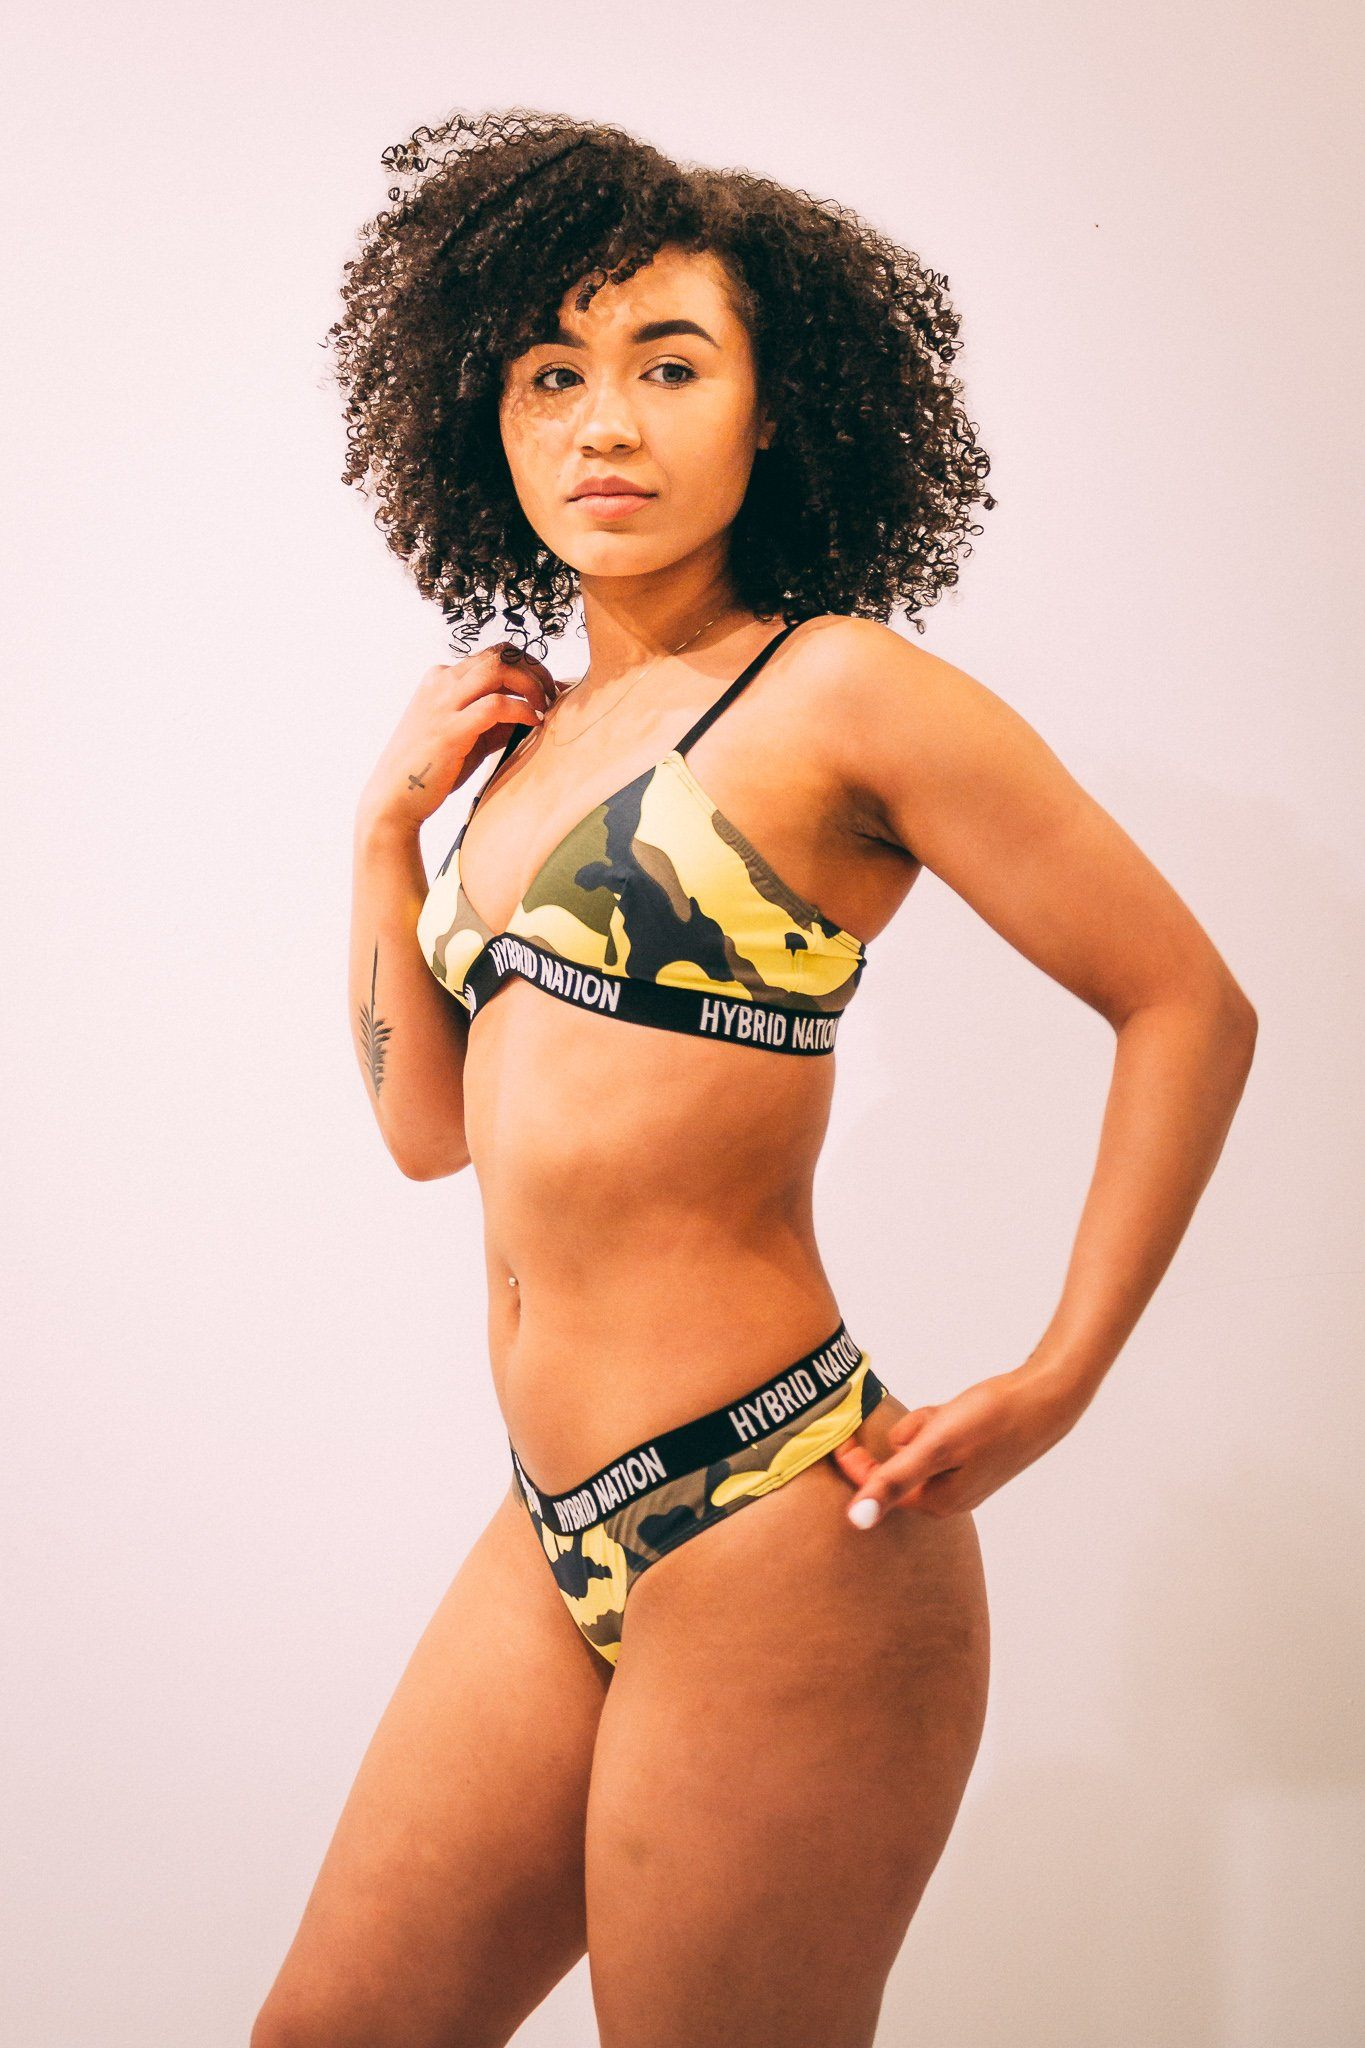 HYBRID NATION WOMEN NEON YELLOW CAMO TRIANGLE BRA & THONG Underwear Set Hybrid Nation Women